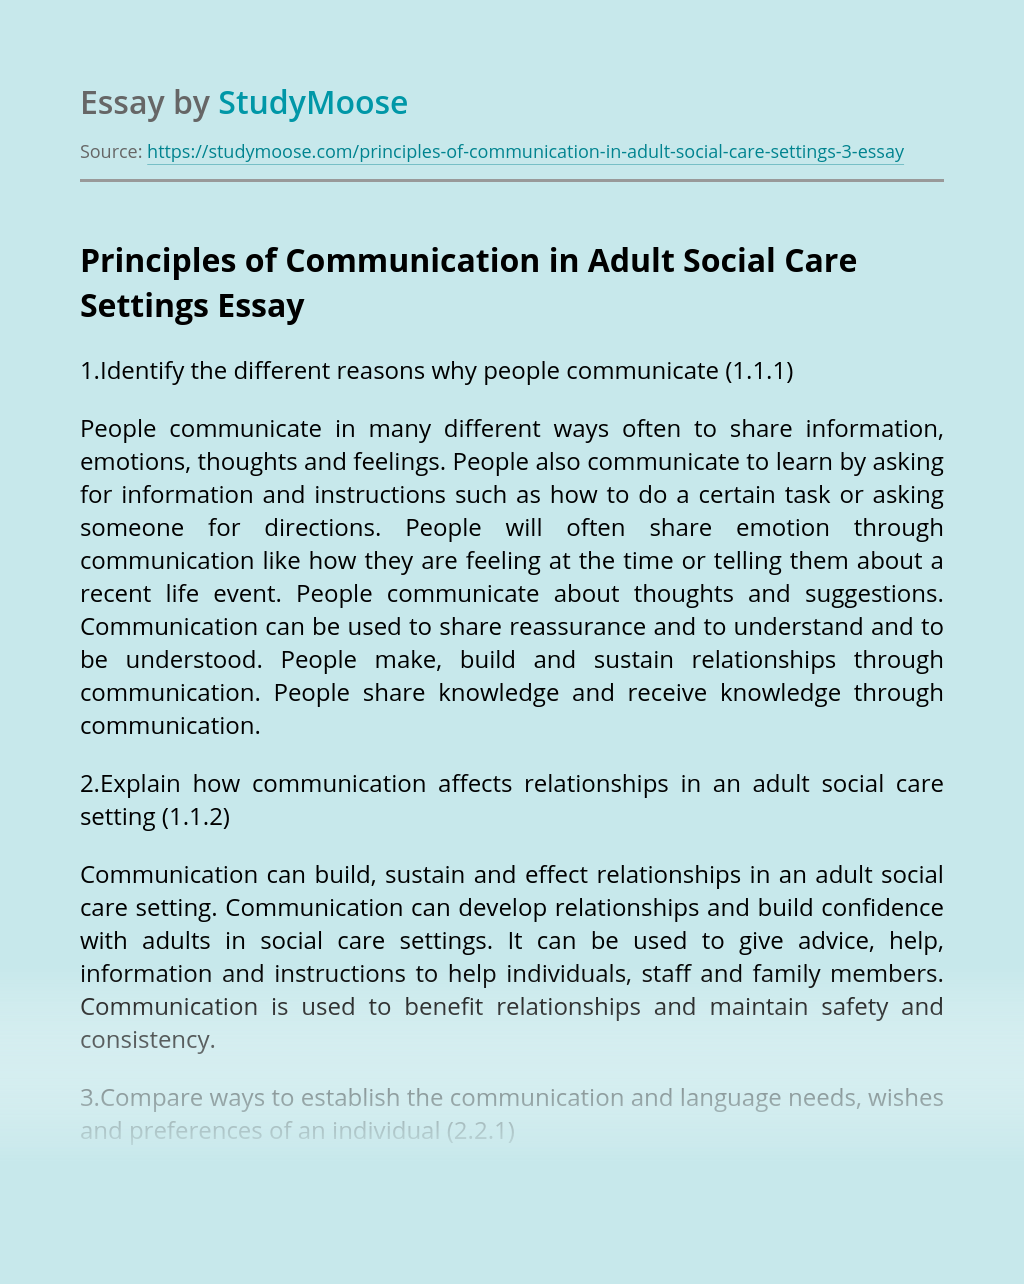 Principles of Communication in Adult Social Care Settings